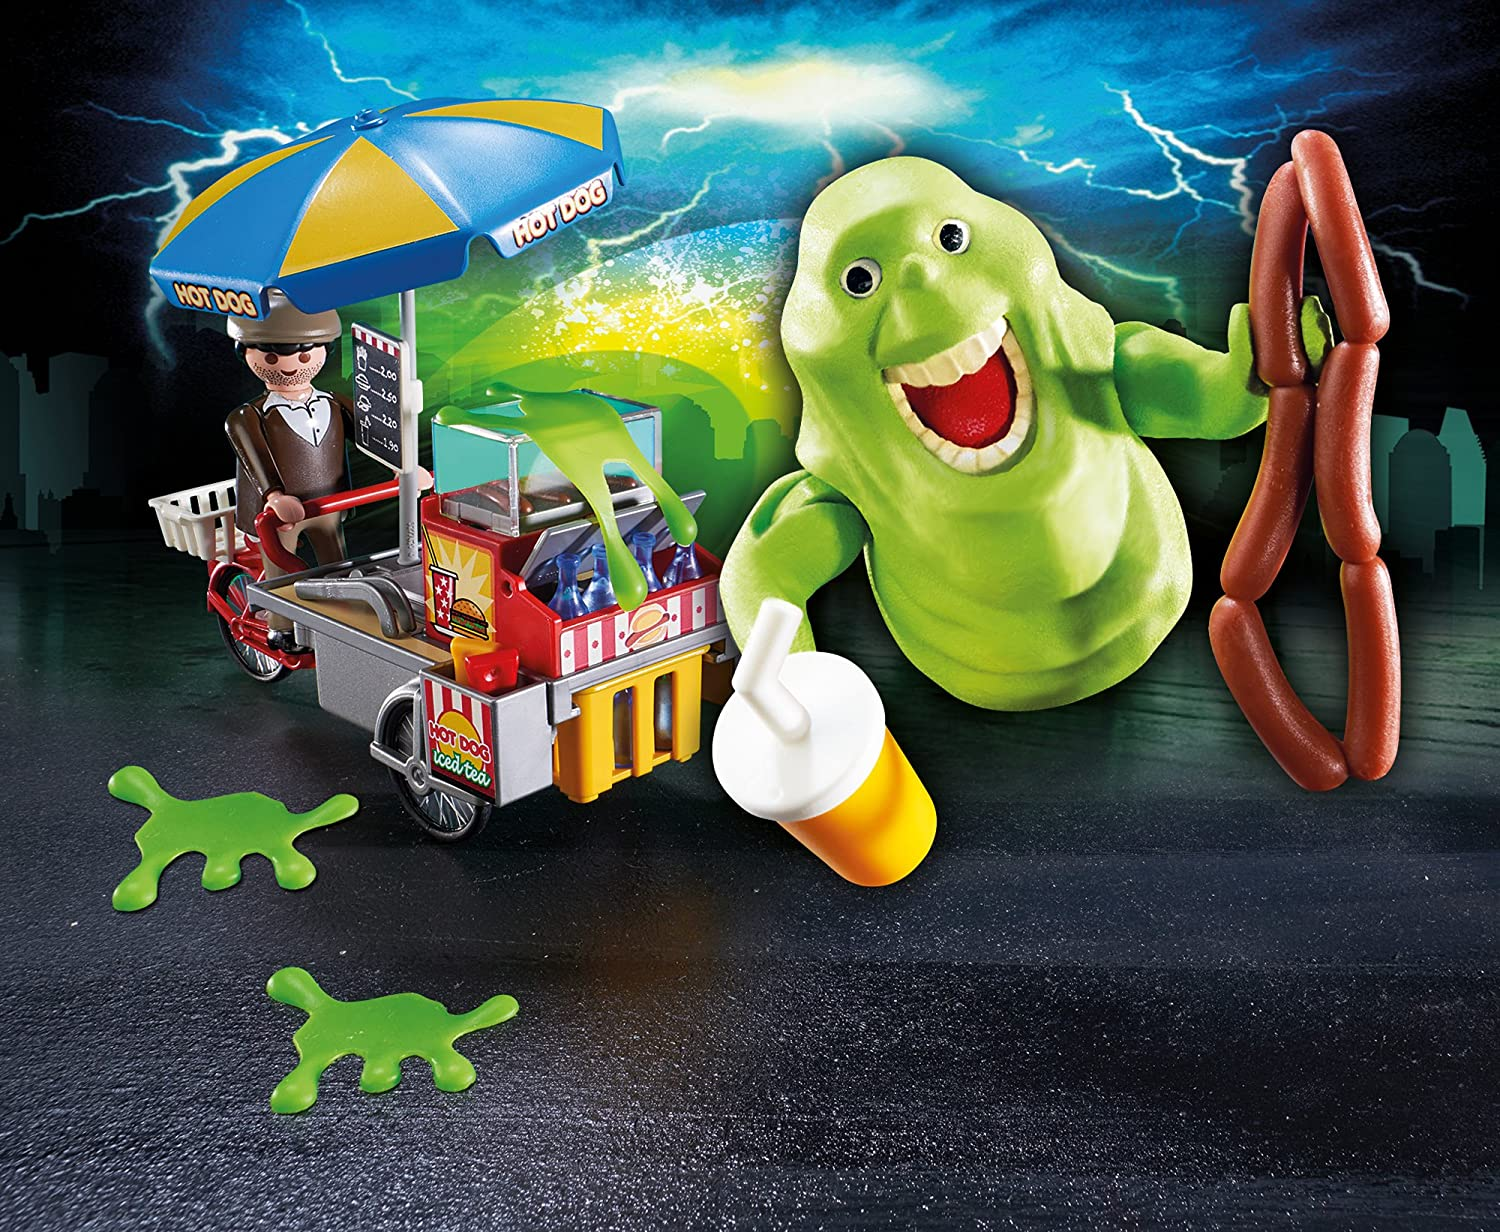 Playmobil Ghostbusters Slimer with Hot Dog Cart 9222 53pc Set NEW